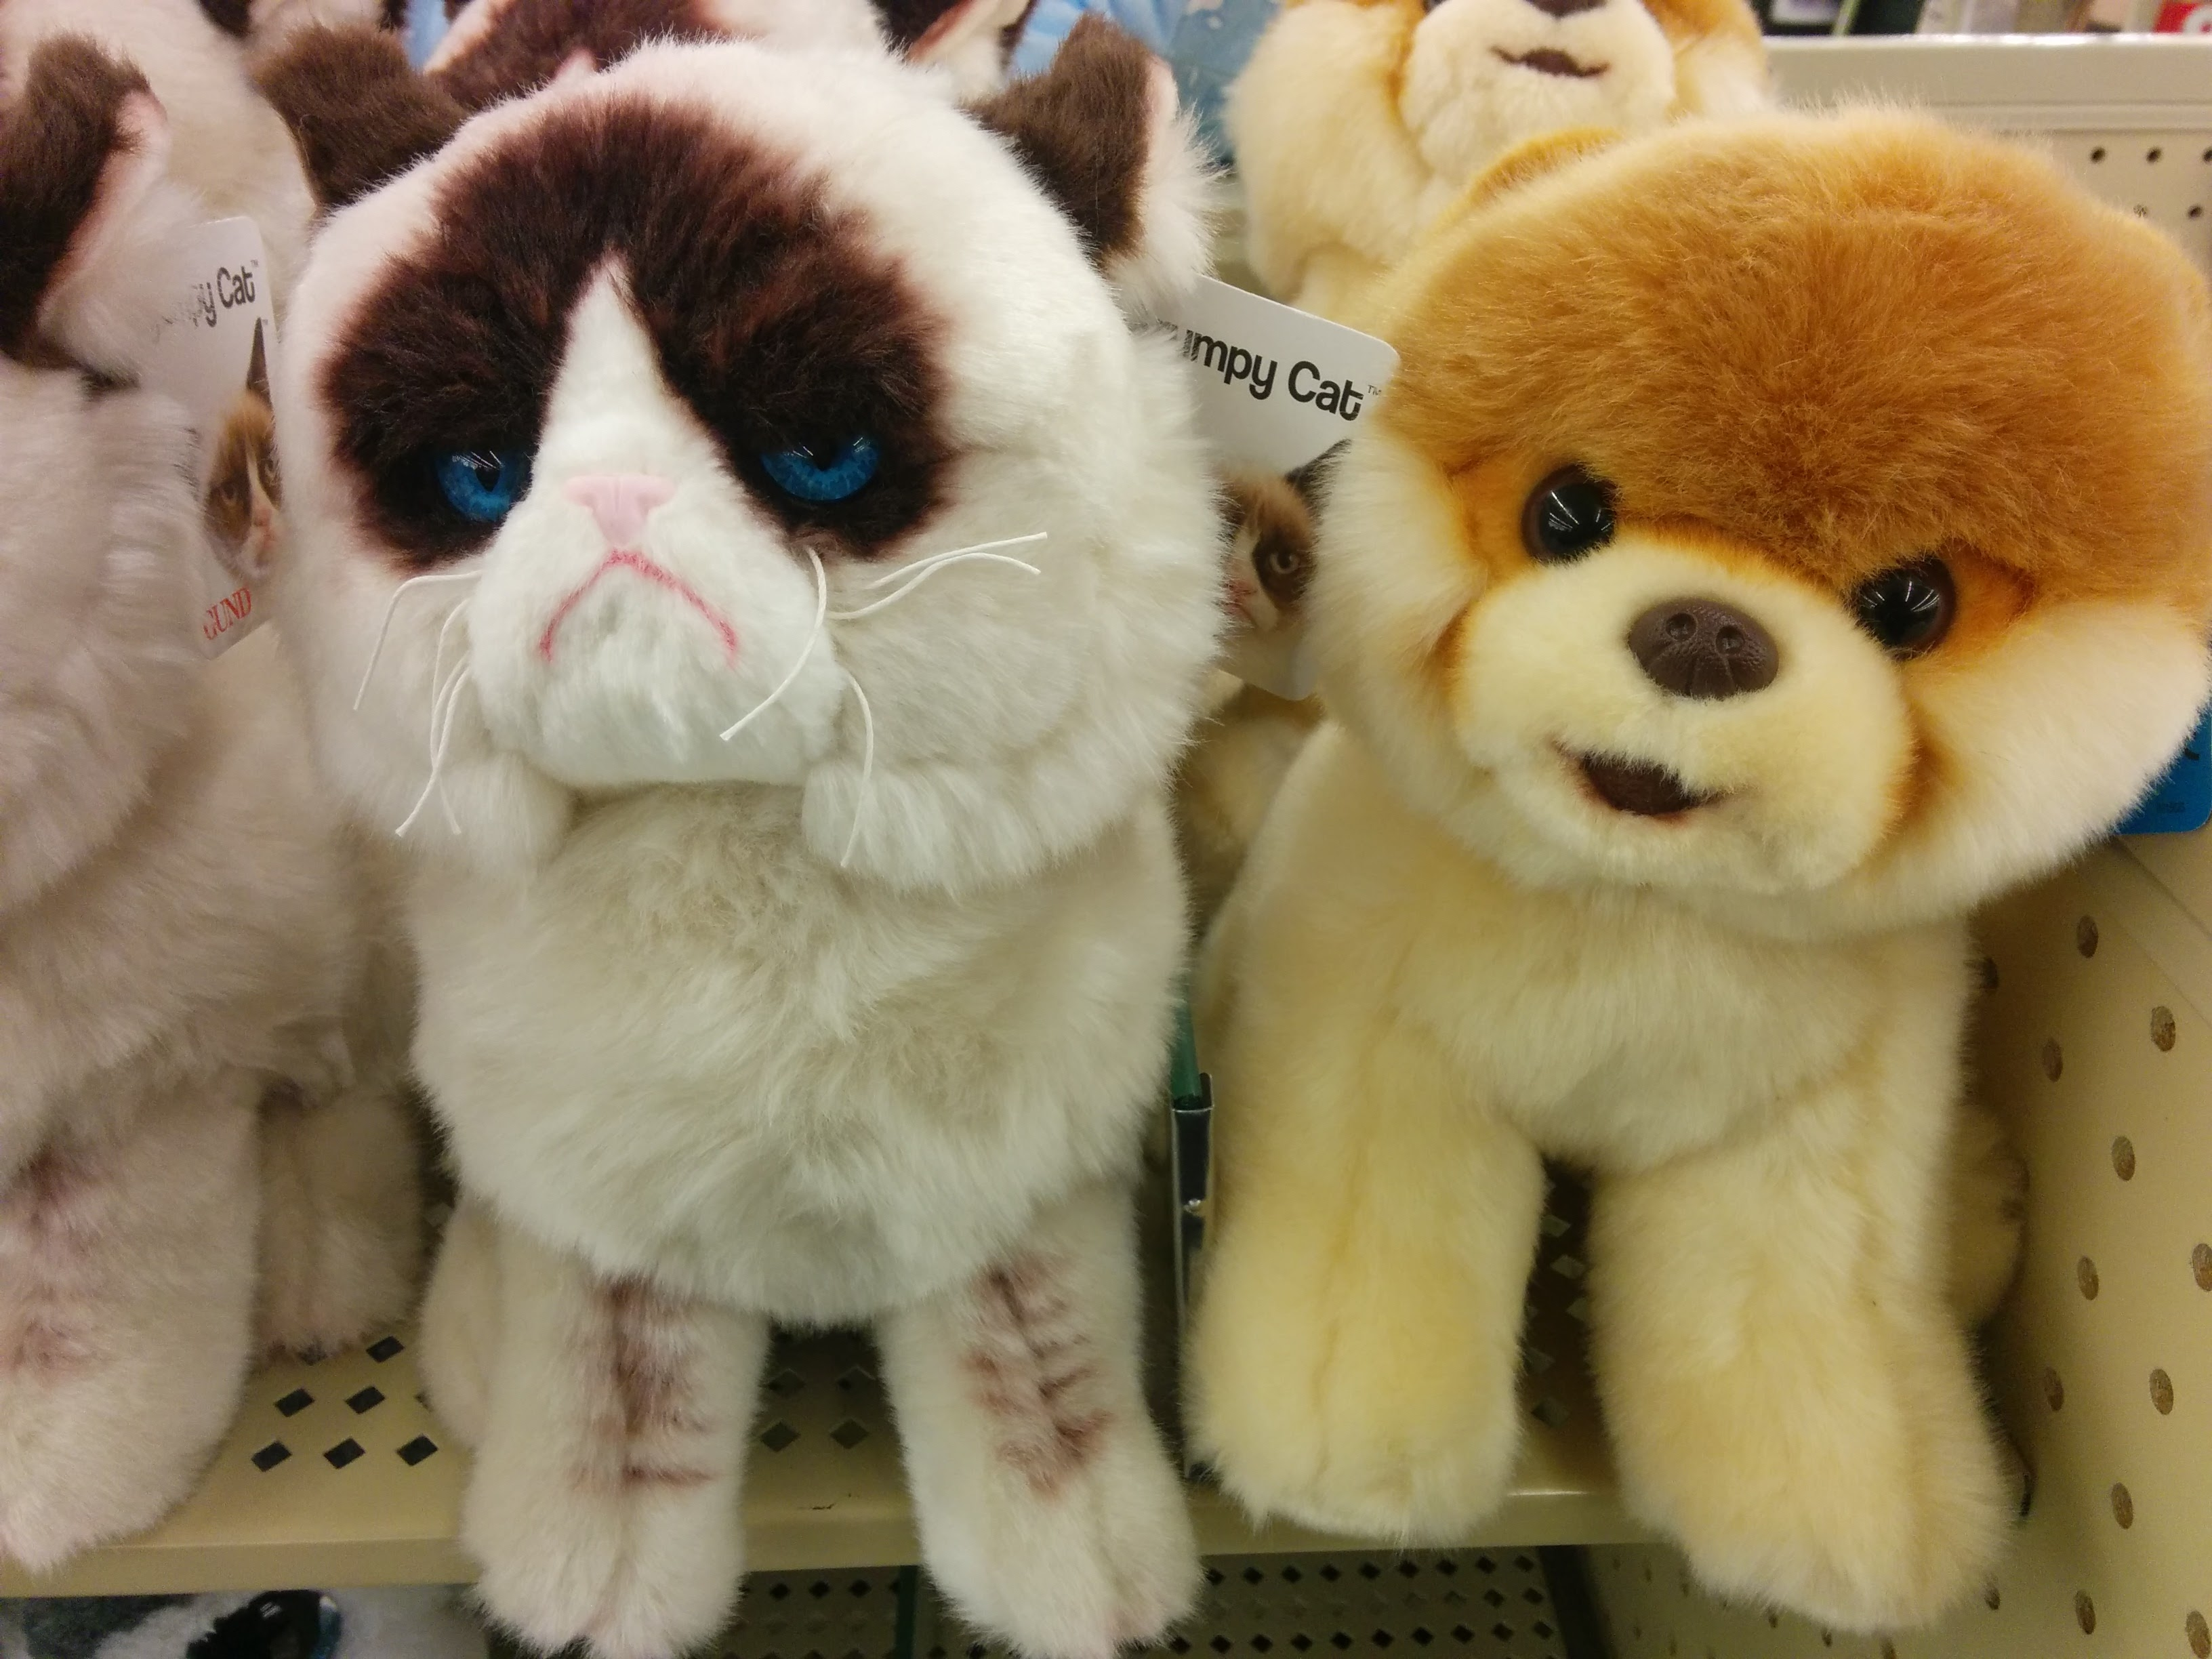 Grumpy Cat and Boo.